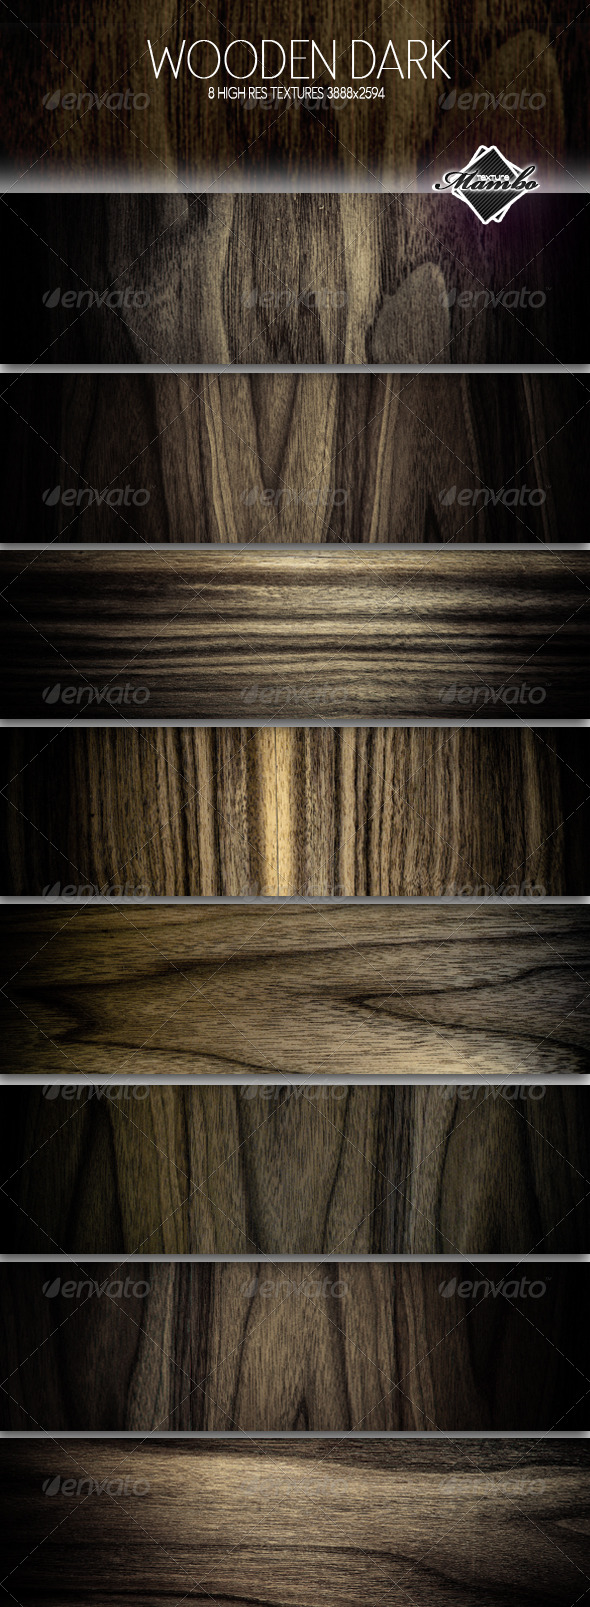 Wooden Dark - Wood background textures - Wood Textures